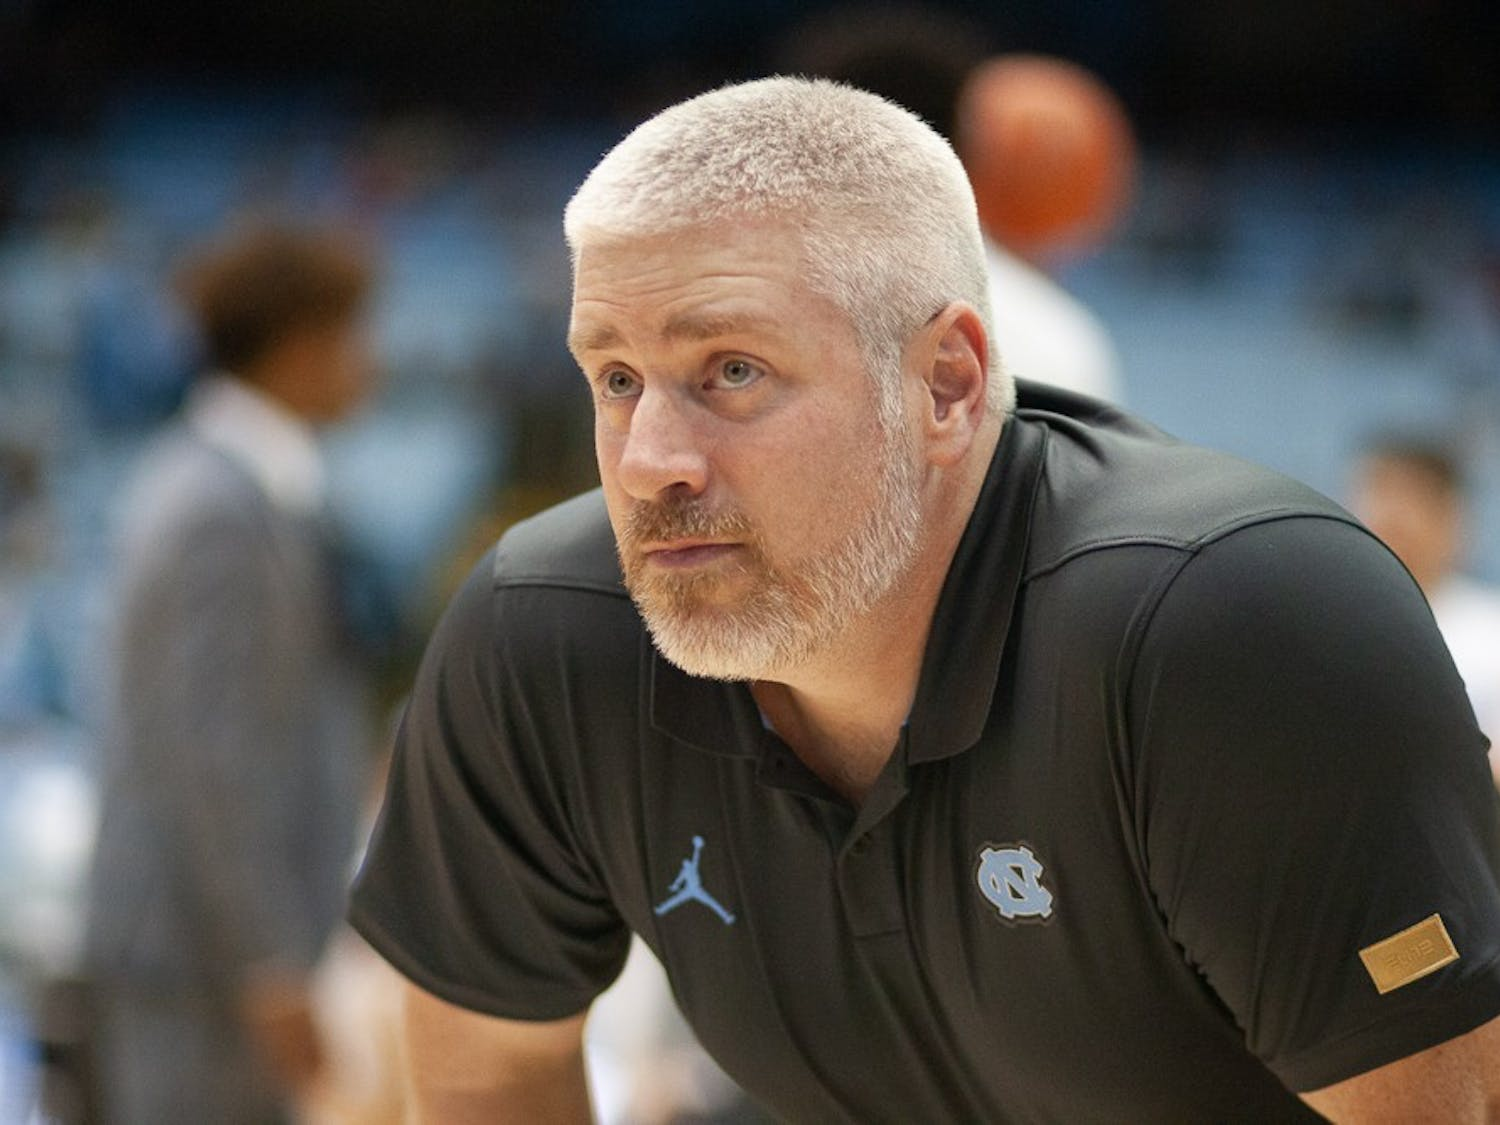 UNC men's basketball head athletic trainer Doug Halverson works before a game against N.C. State in the Smith Center on Tuesday, Feb. 25, 2020.